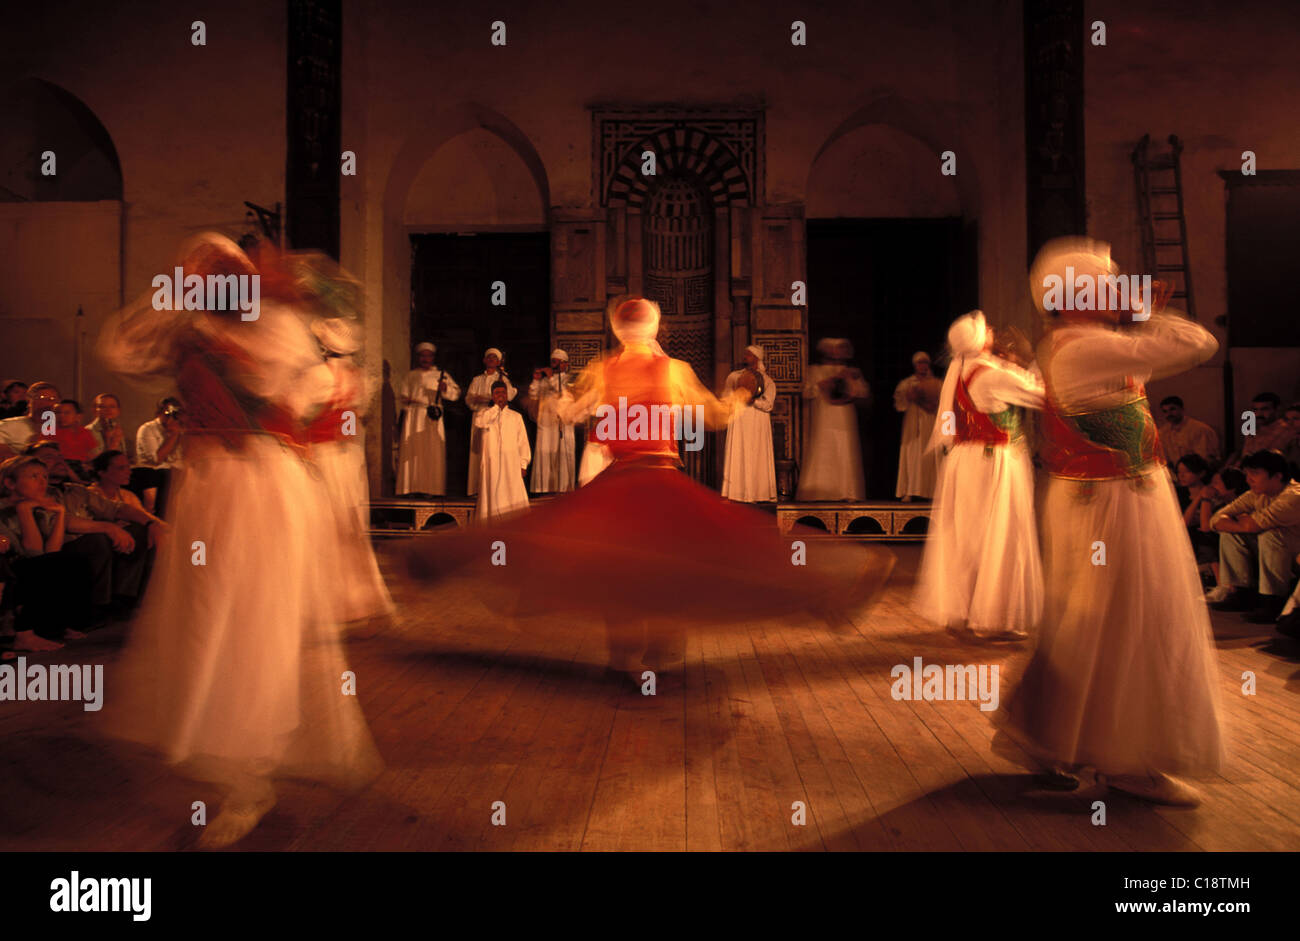 Egypt, Cairo, whirling or dancing dervish in the El-Ghouri Mausoleum - Stock Image